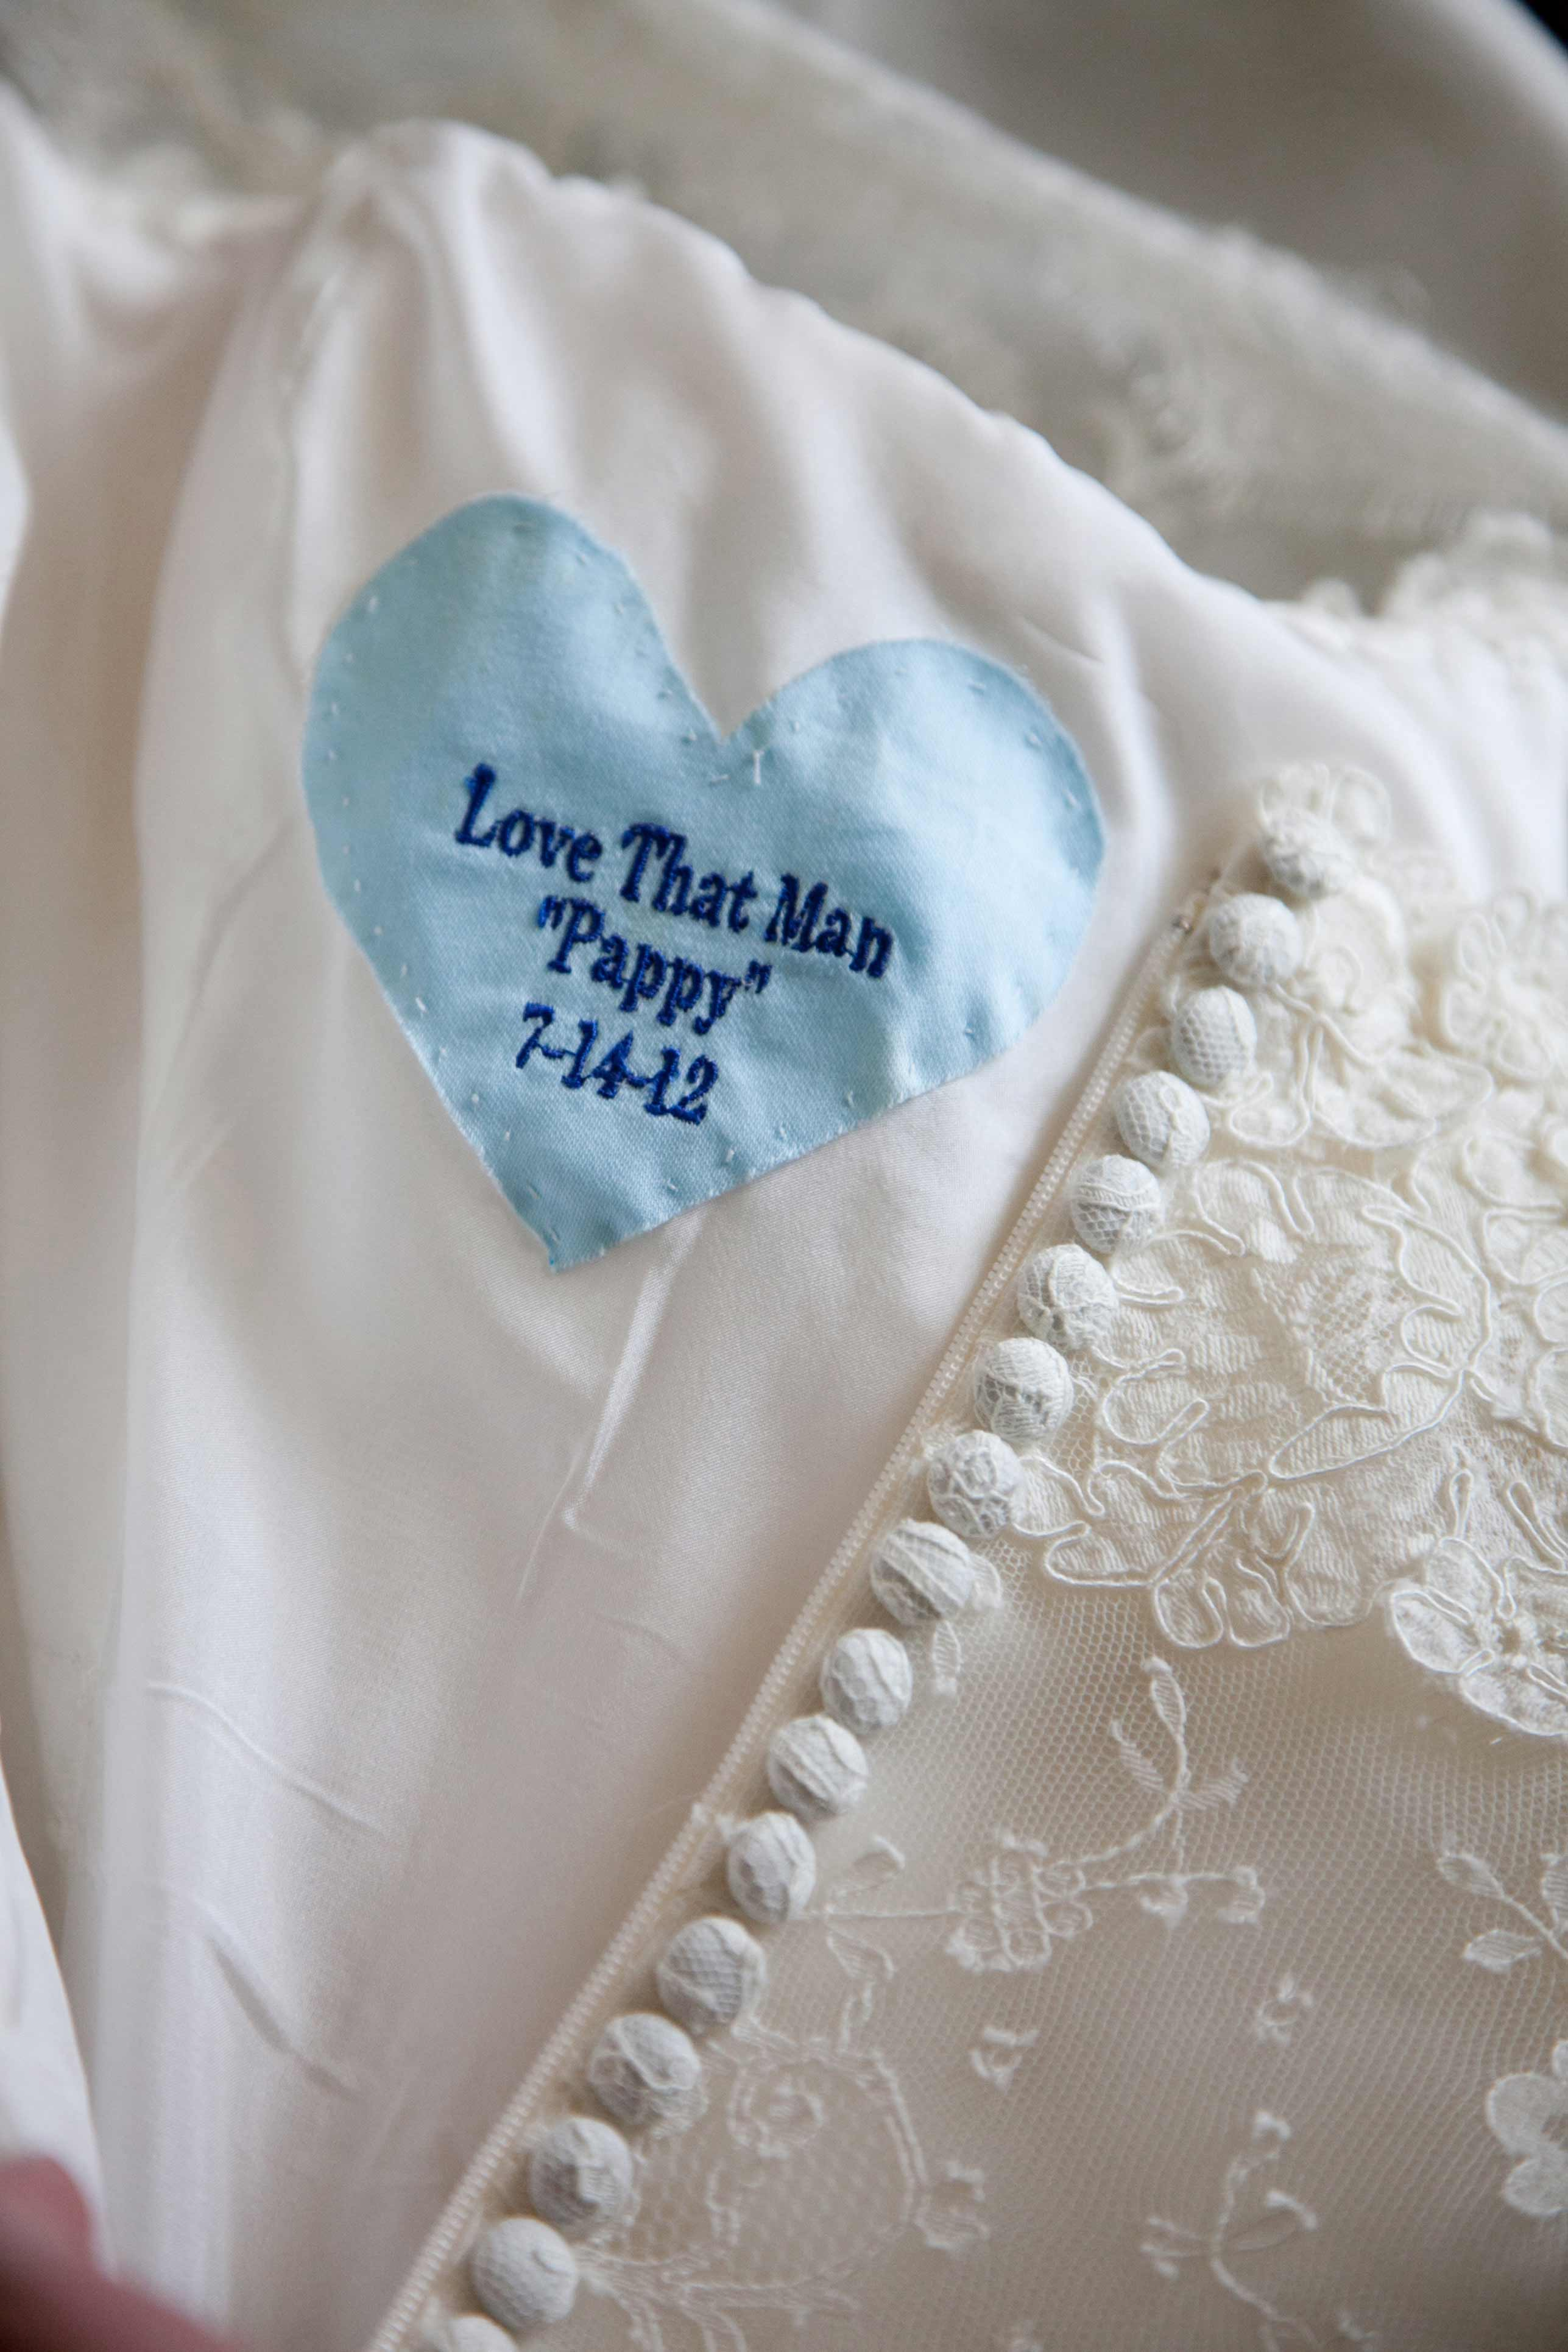 Something blue heart sewn into wedding dress wedding detail shot photography